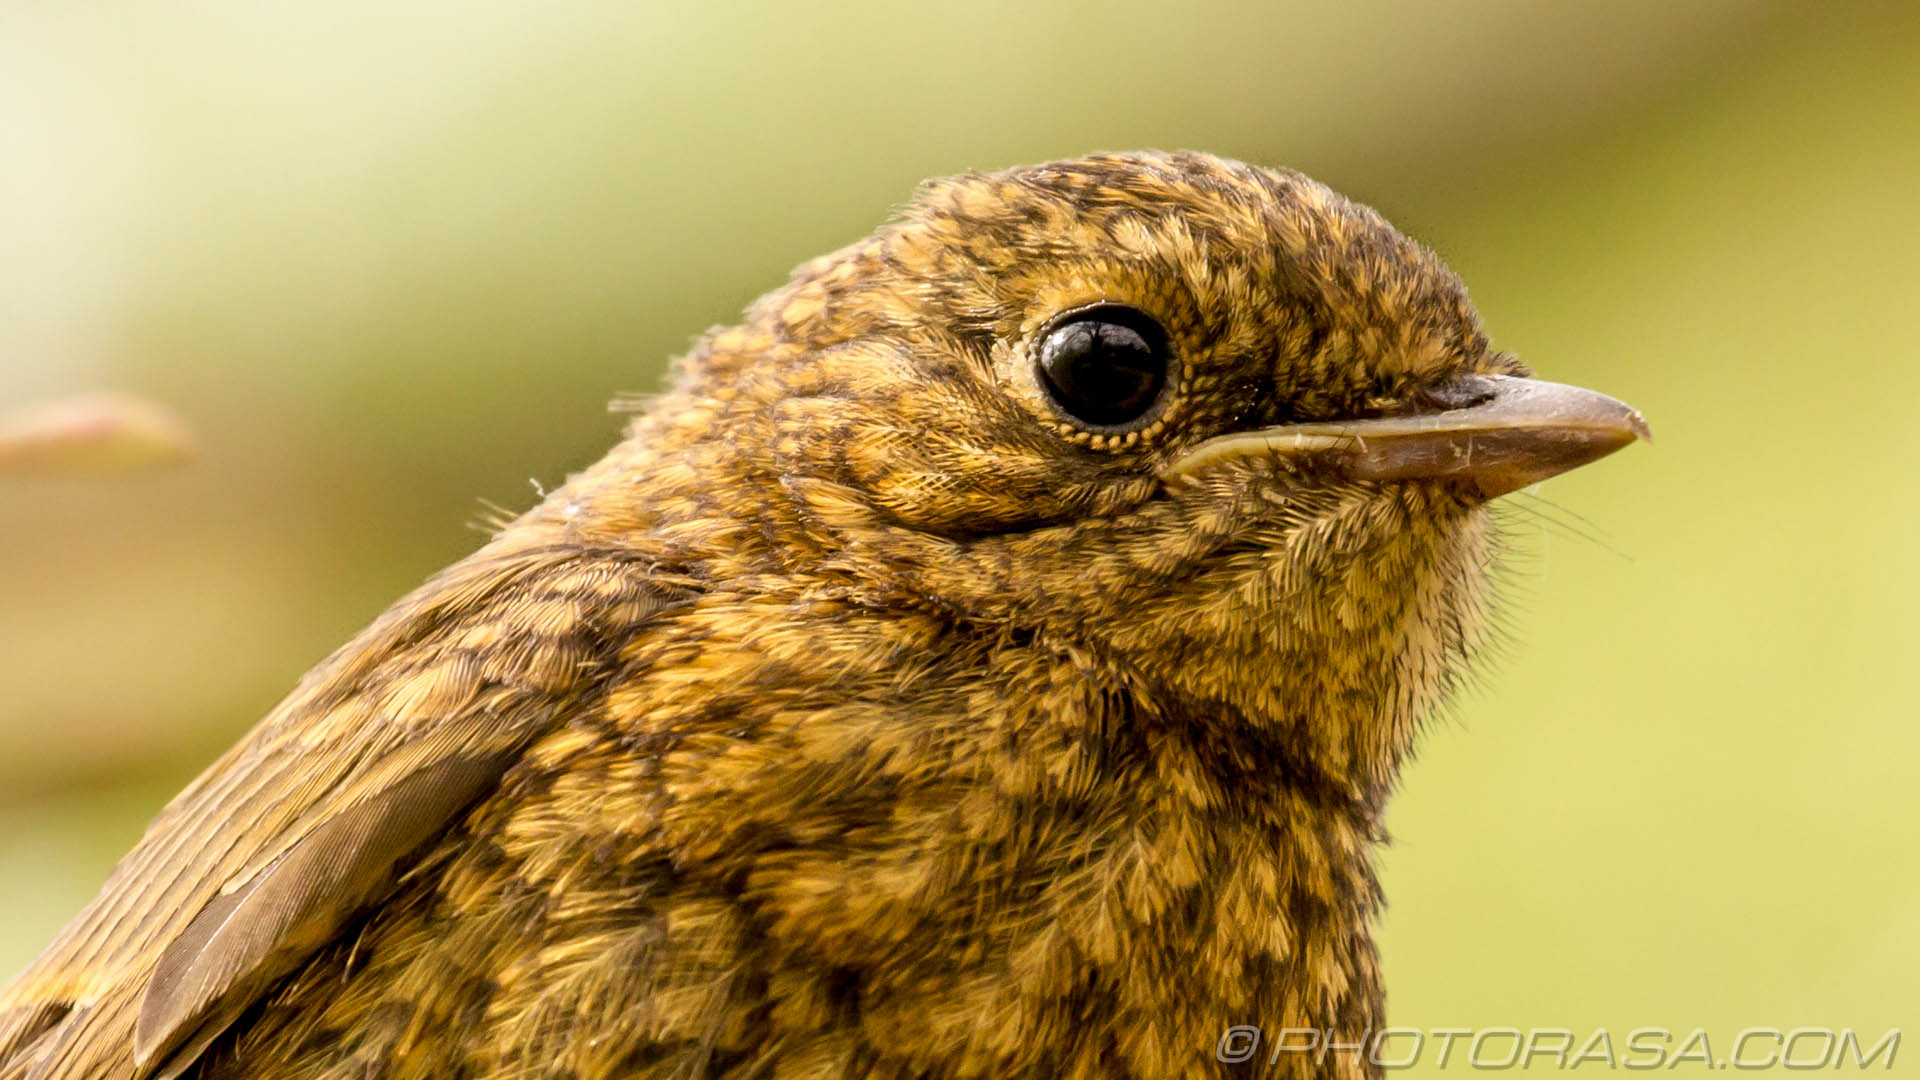 http://photorasa.com/young-robin-brown-orange/young-robin-feathers-and-eye-close-up/